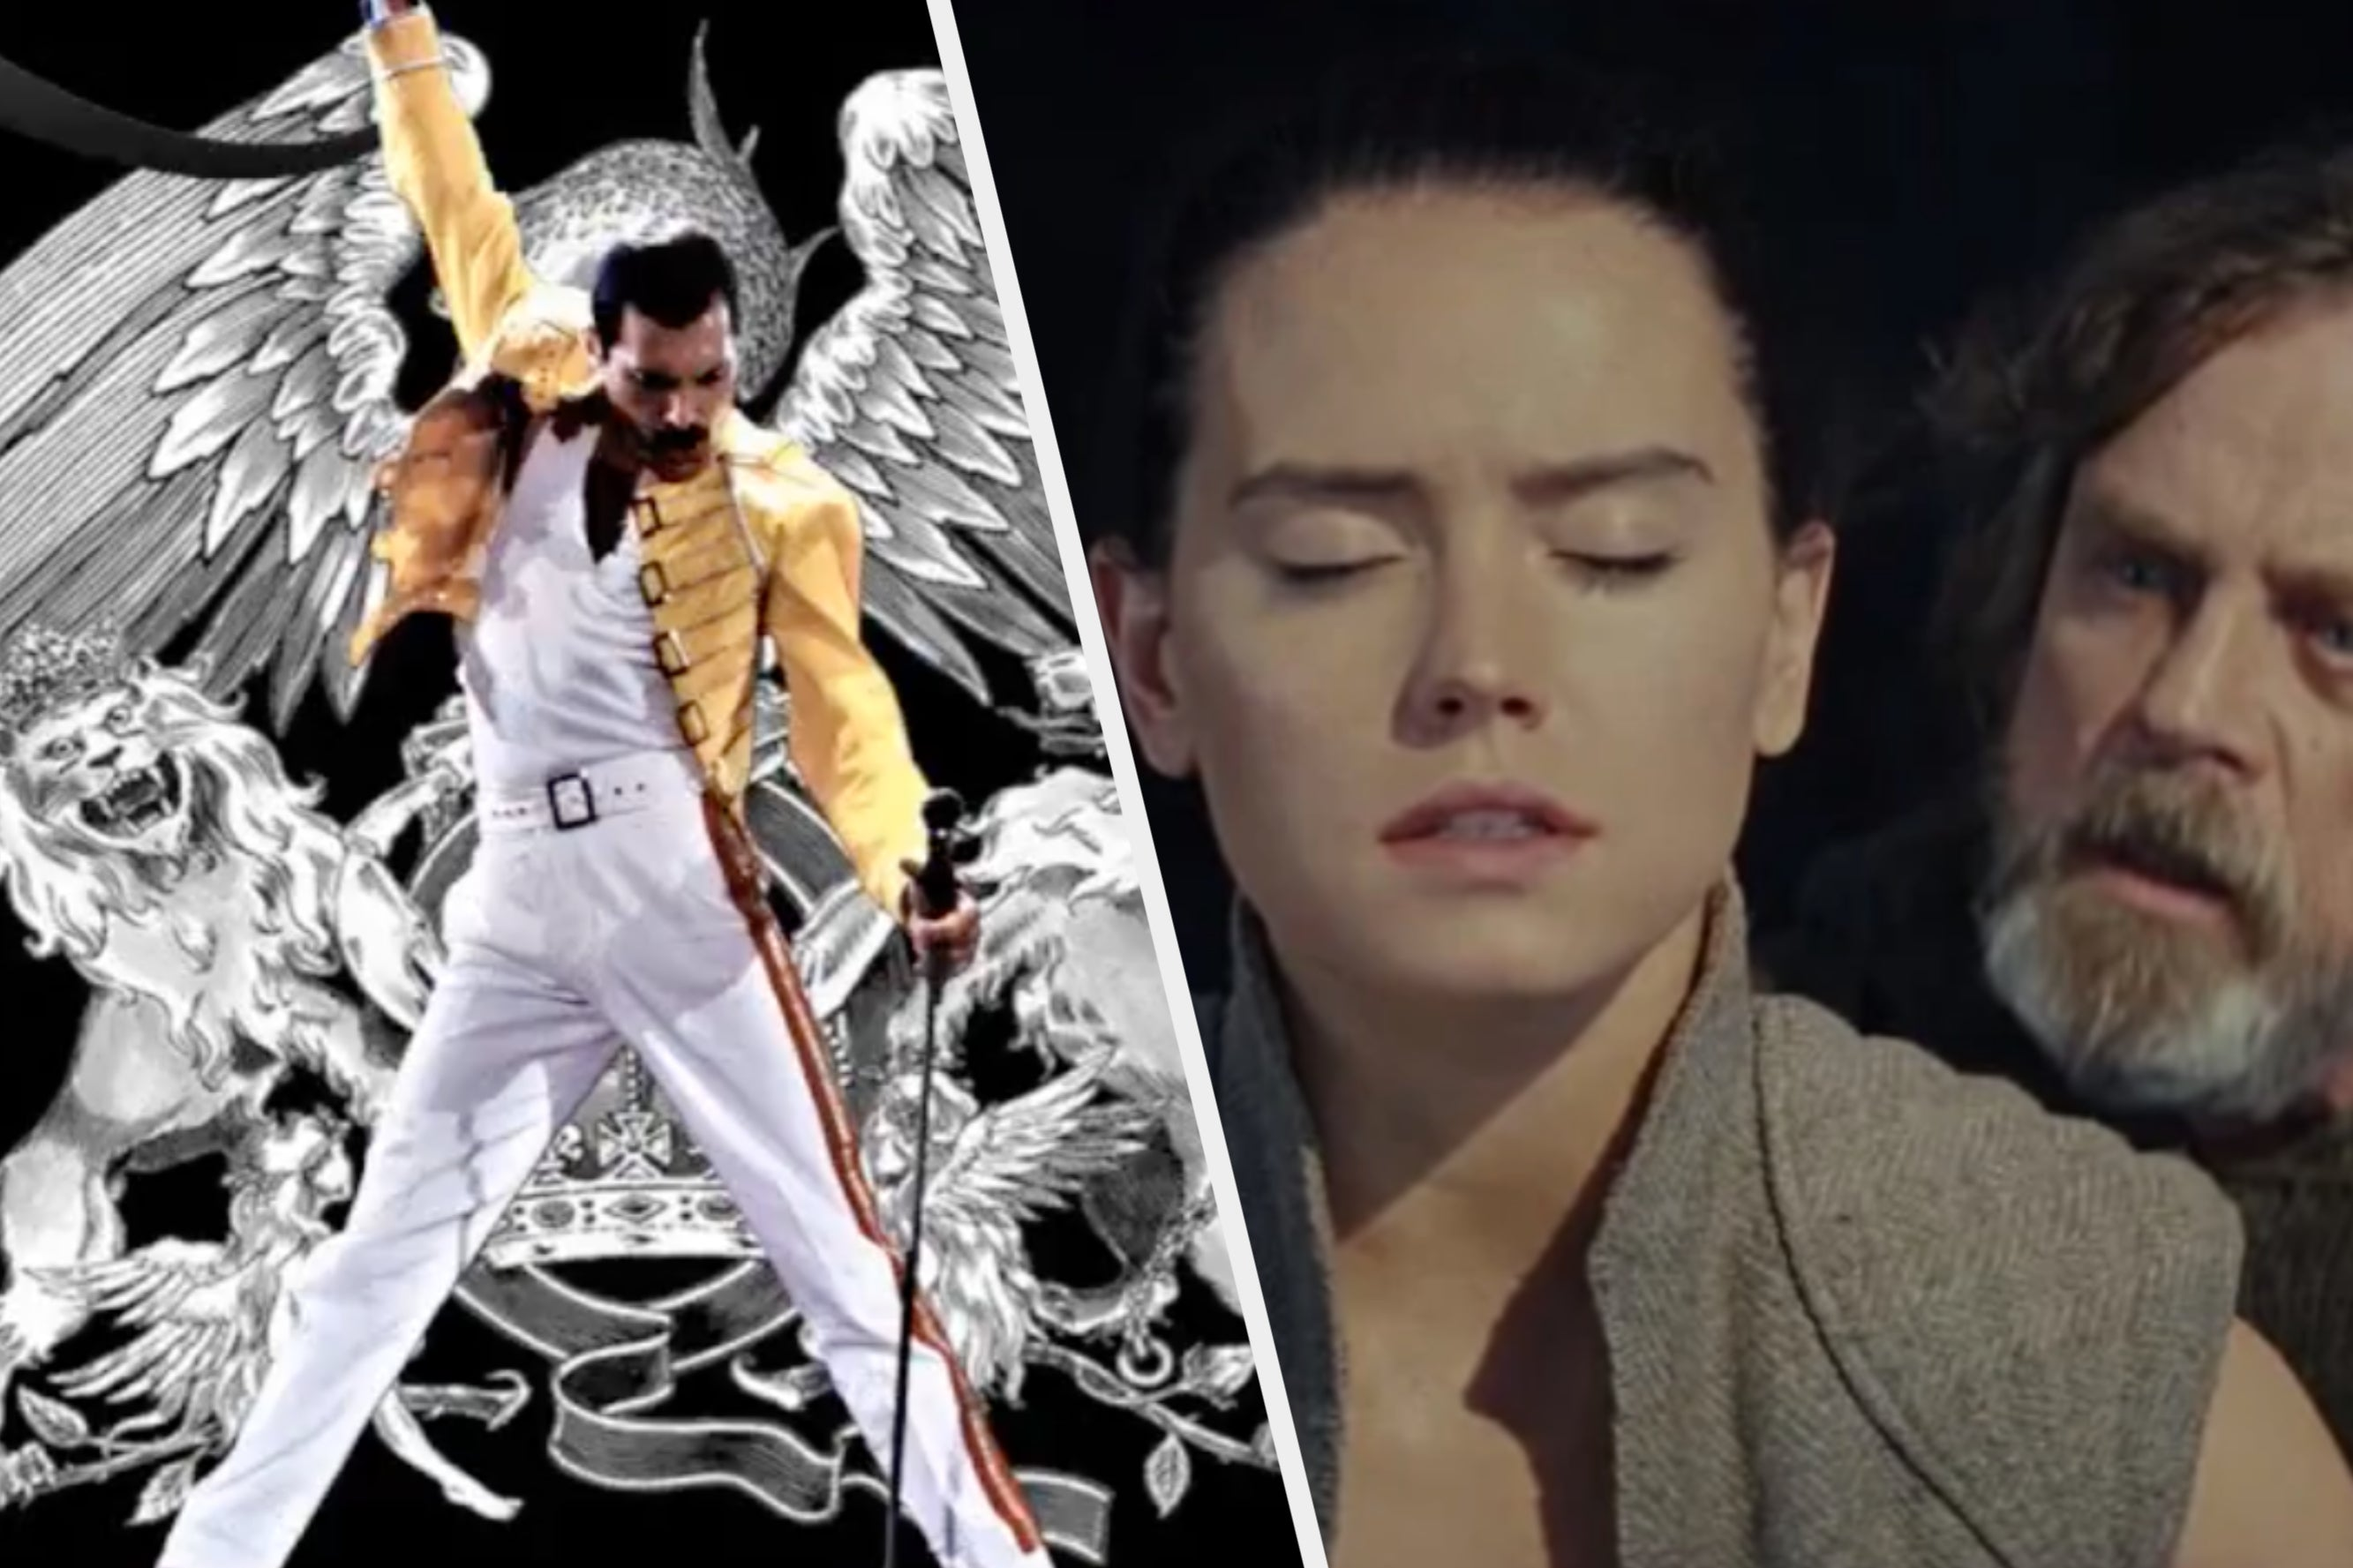 We Know Which Skywalker Family Member Matches Your Energy Based On The Queen Song Playlist You Craft